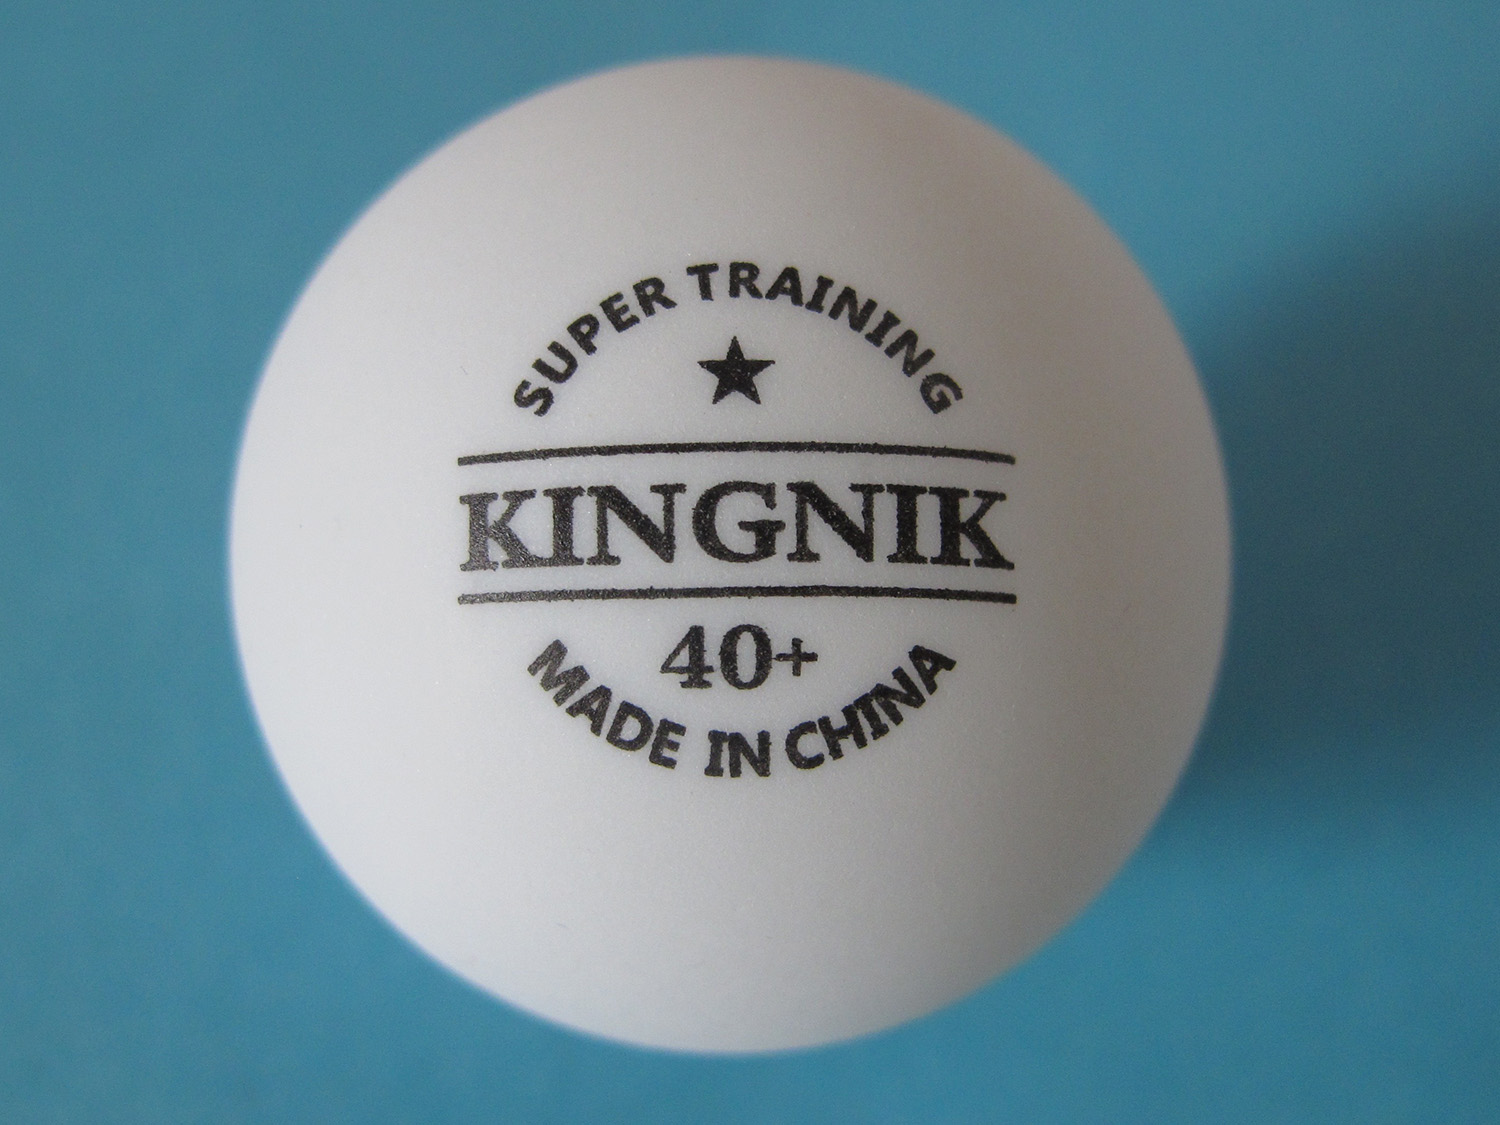 Kingnik abs material super training 40 plastic table for 100 table tennis balls